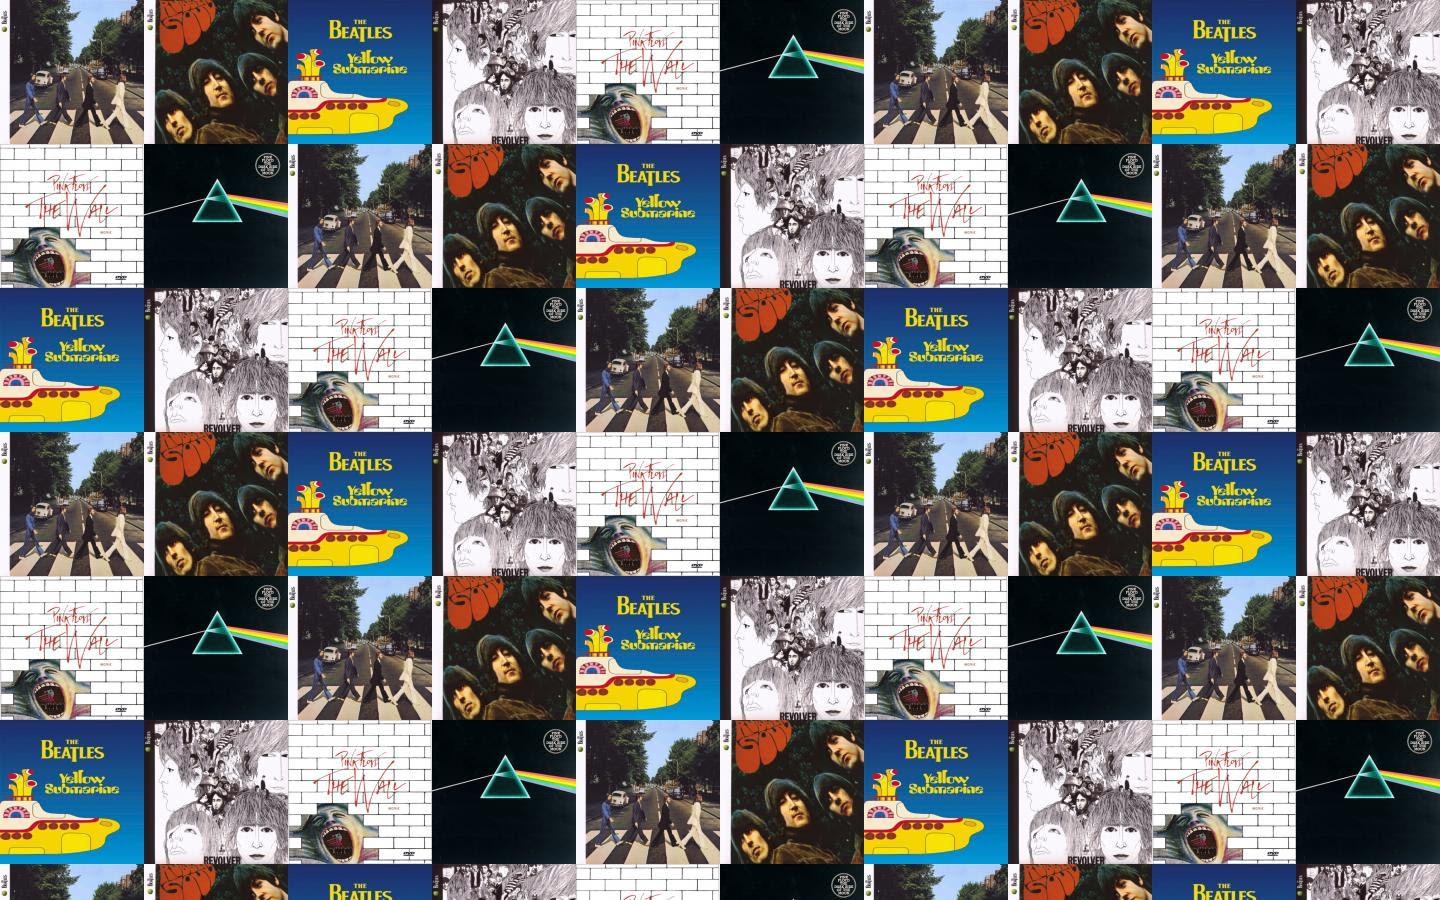 The Beatles Abbey Road Rubber Soul Yellow Submarine Wallpaper